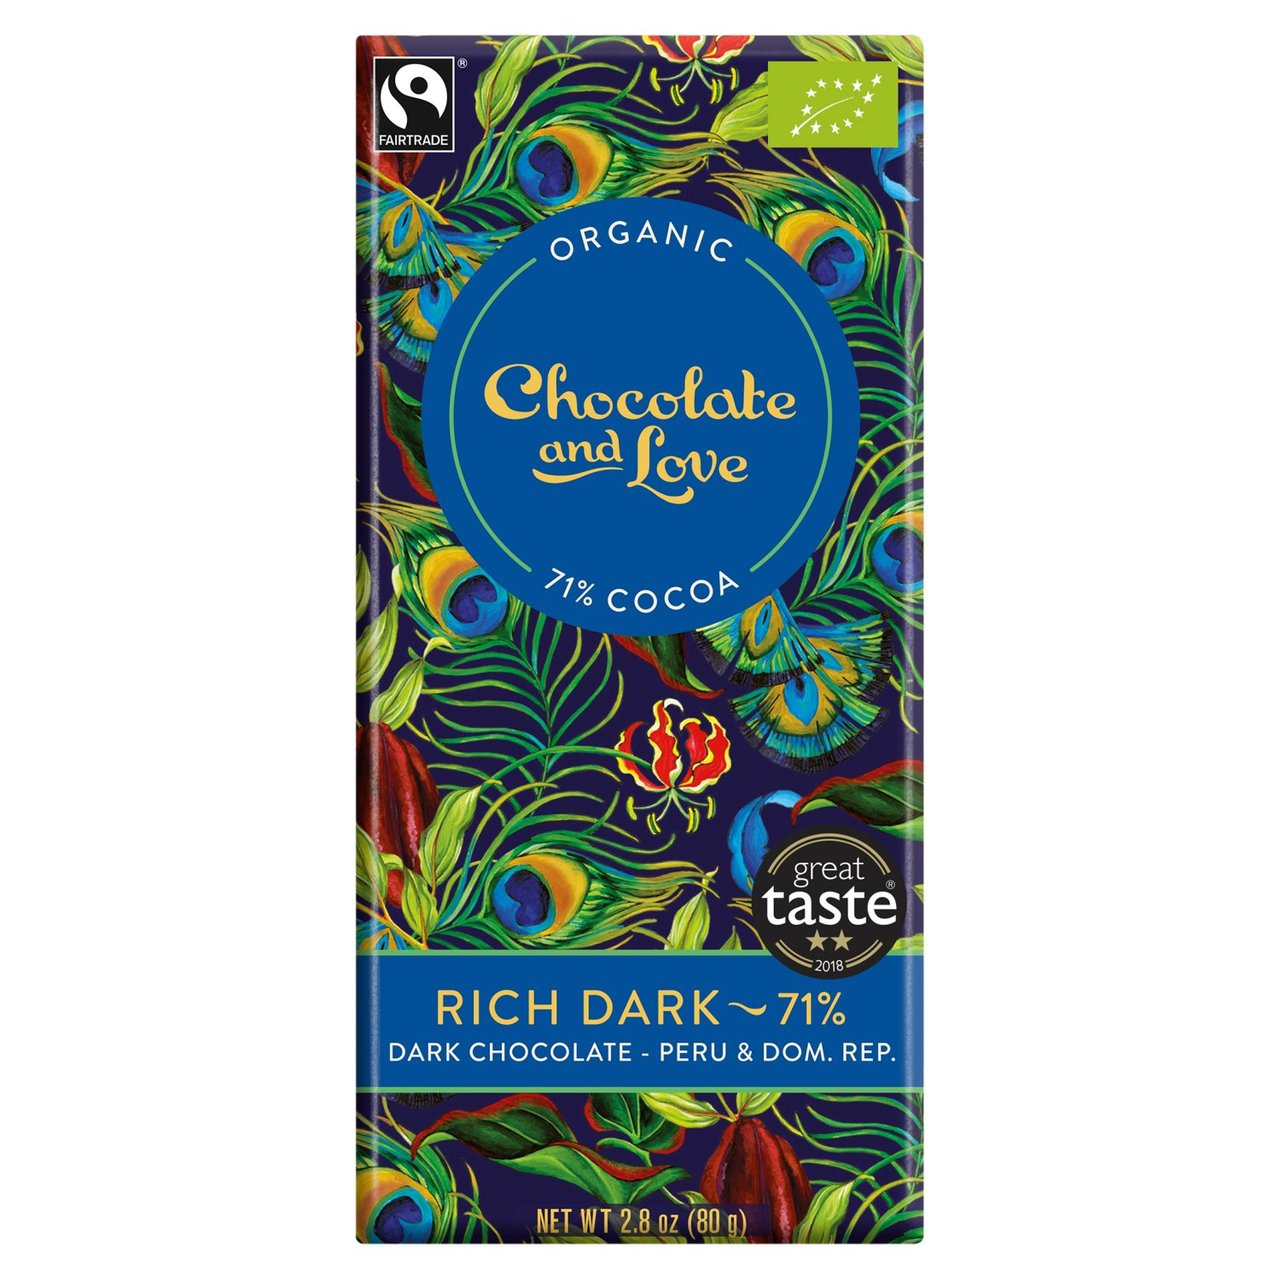 Rich Dark 71% Chocolate & Love Organic Fairtrade Chocolate Bar